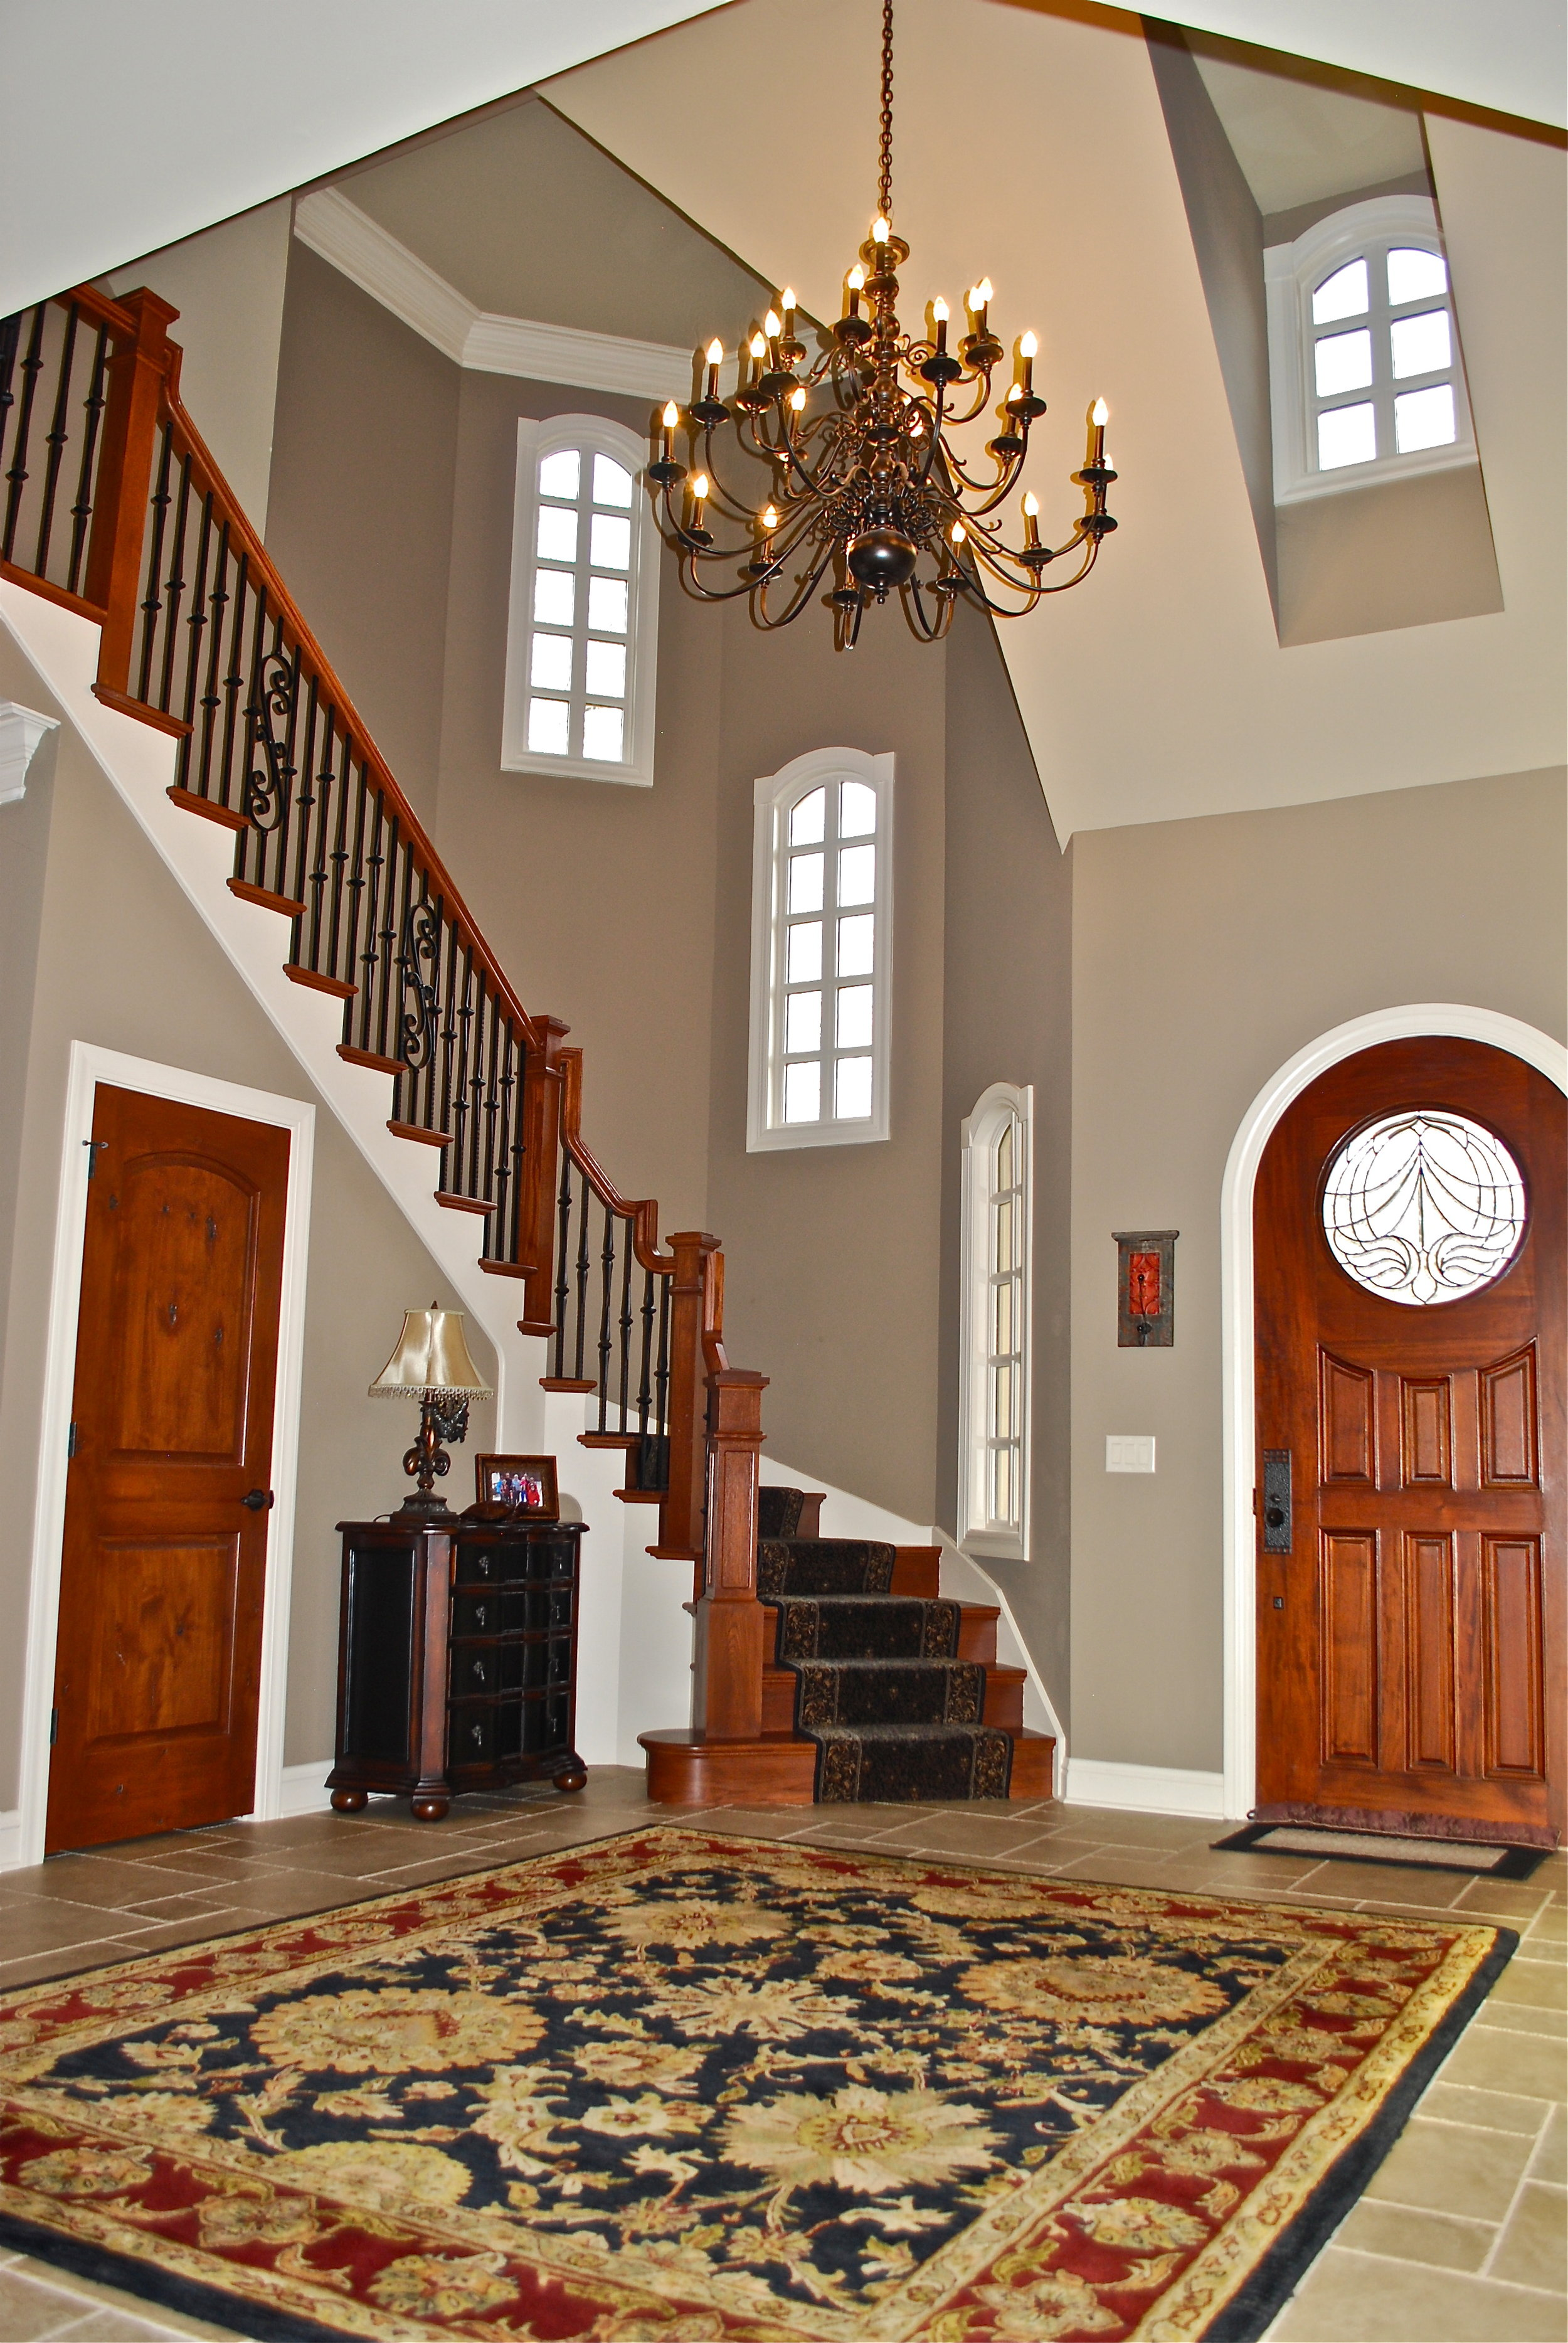 Stairs in Turret with Curved Front Door